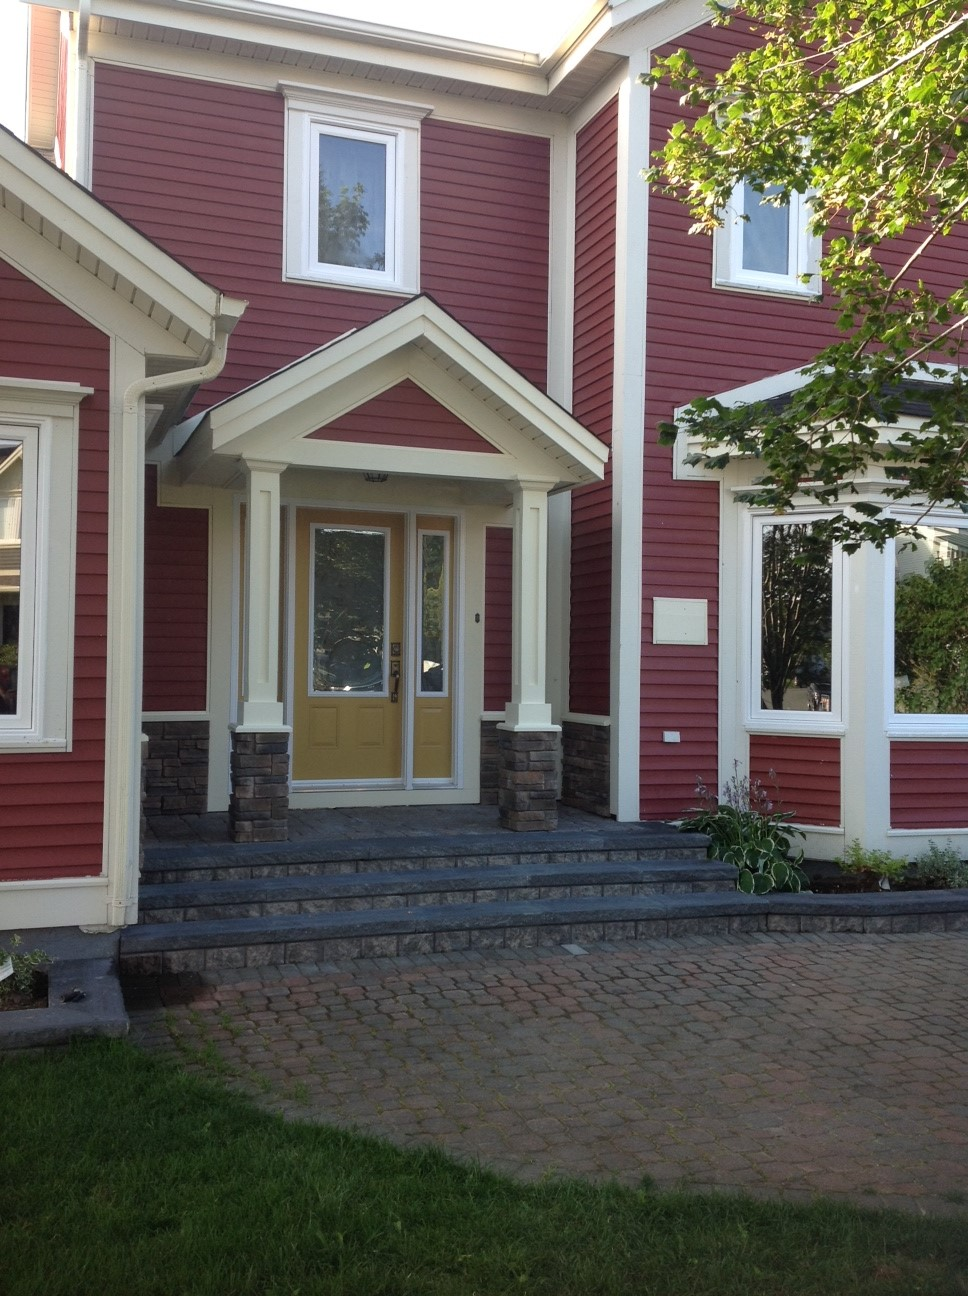 After - a beautiful covered porch with professional stonework